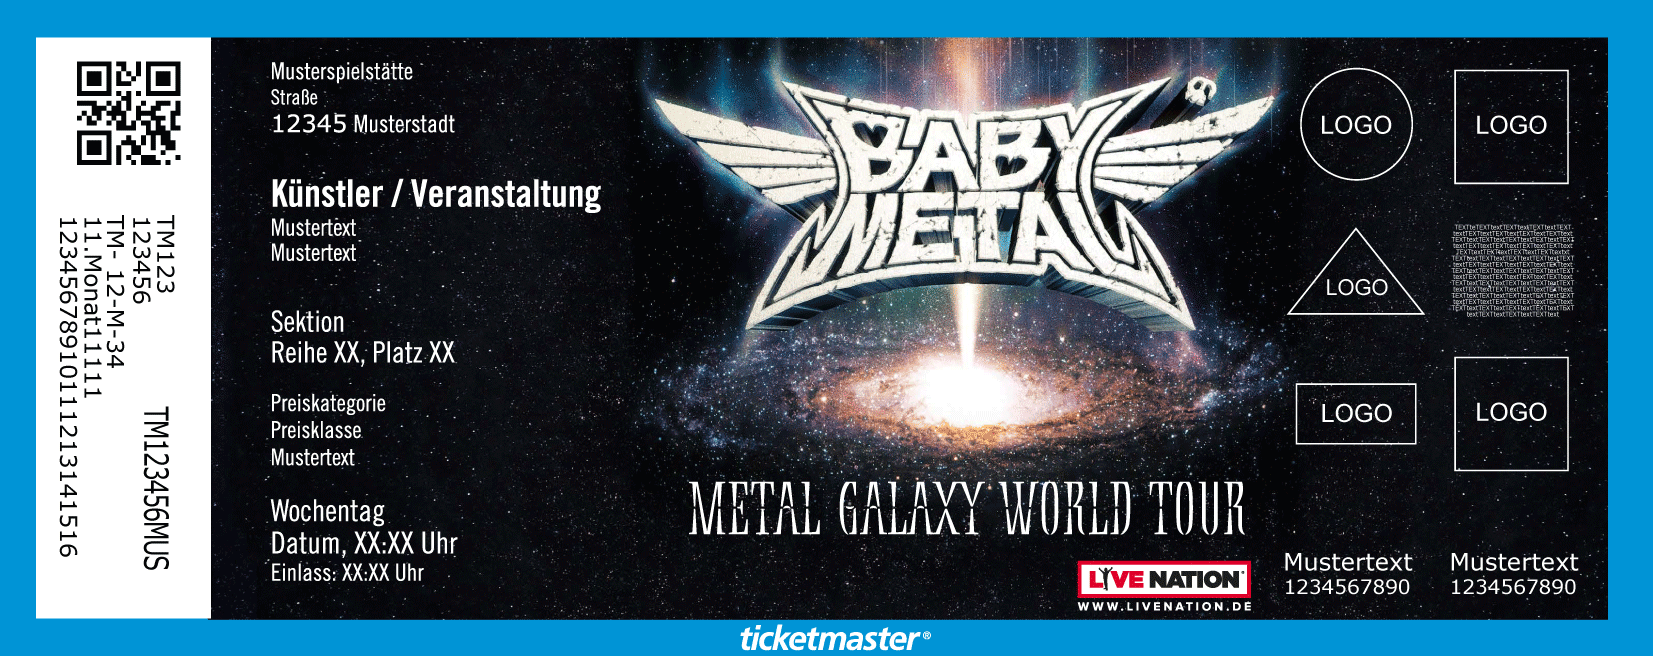 Babymetal Tour 2020.Ticket Information For The Europe 2020 Tour Babymetal News